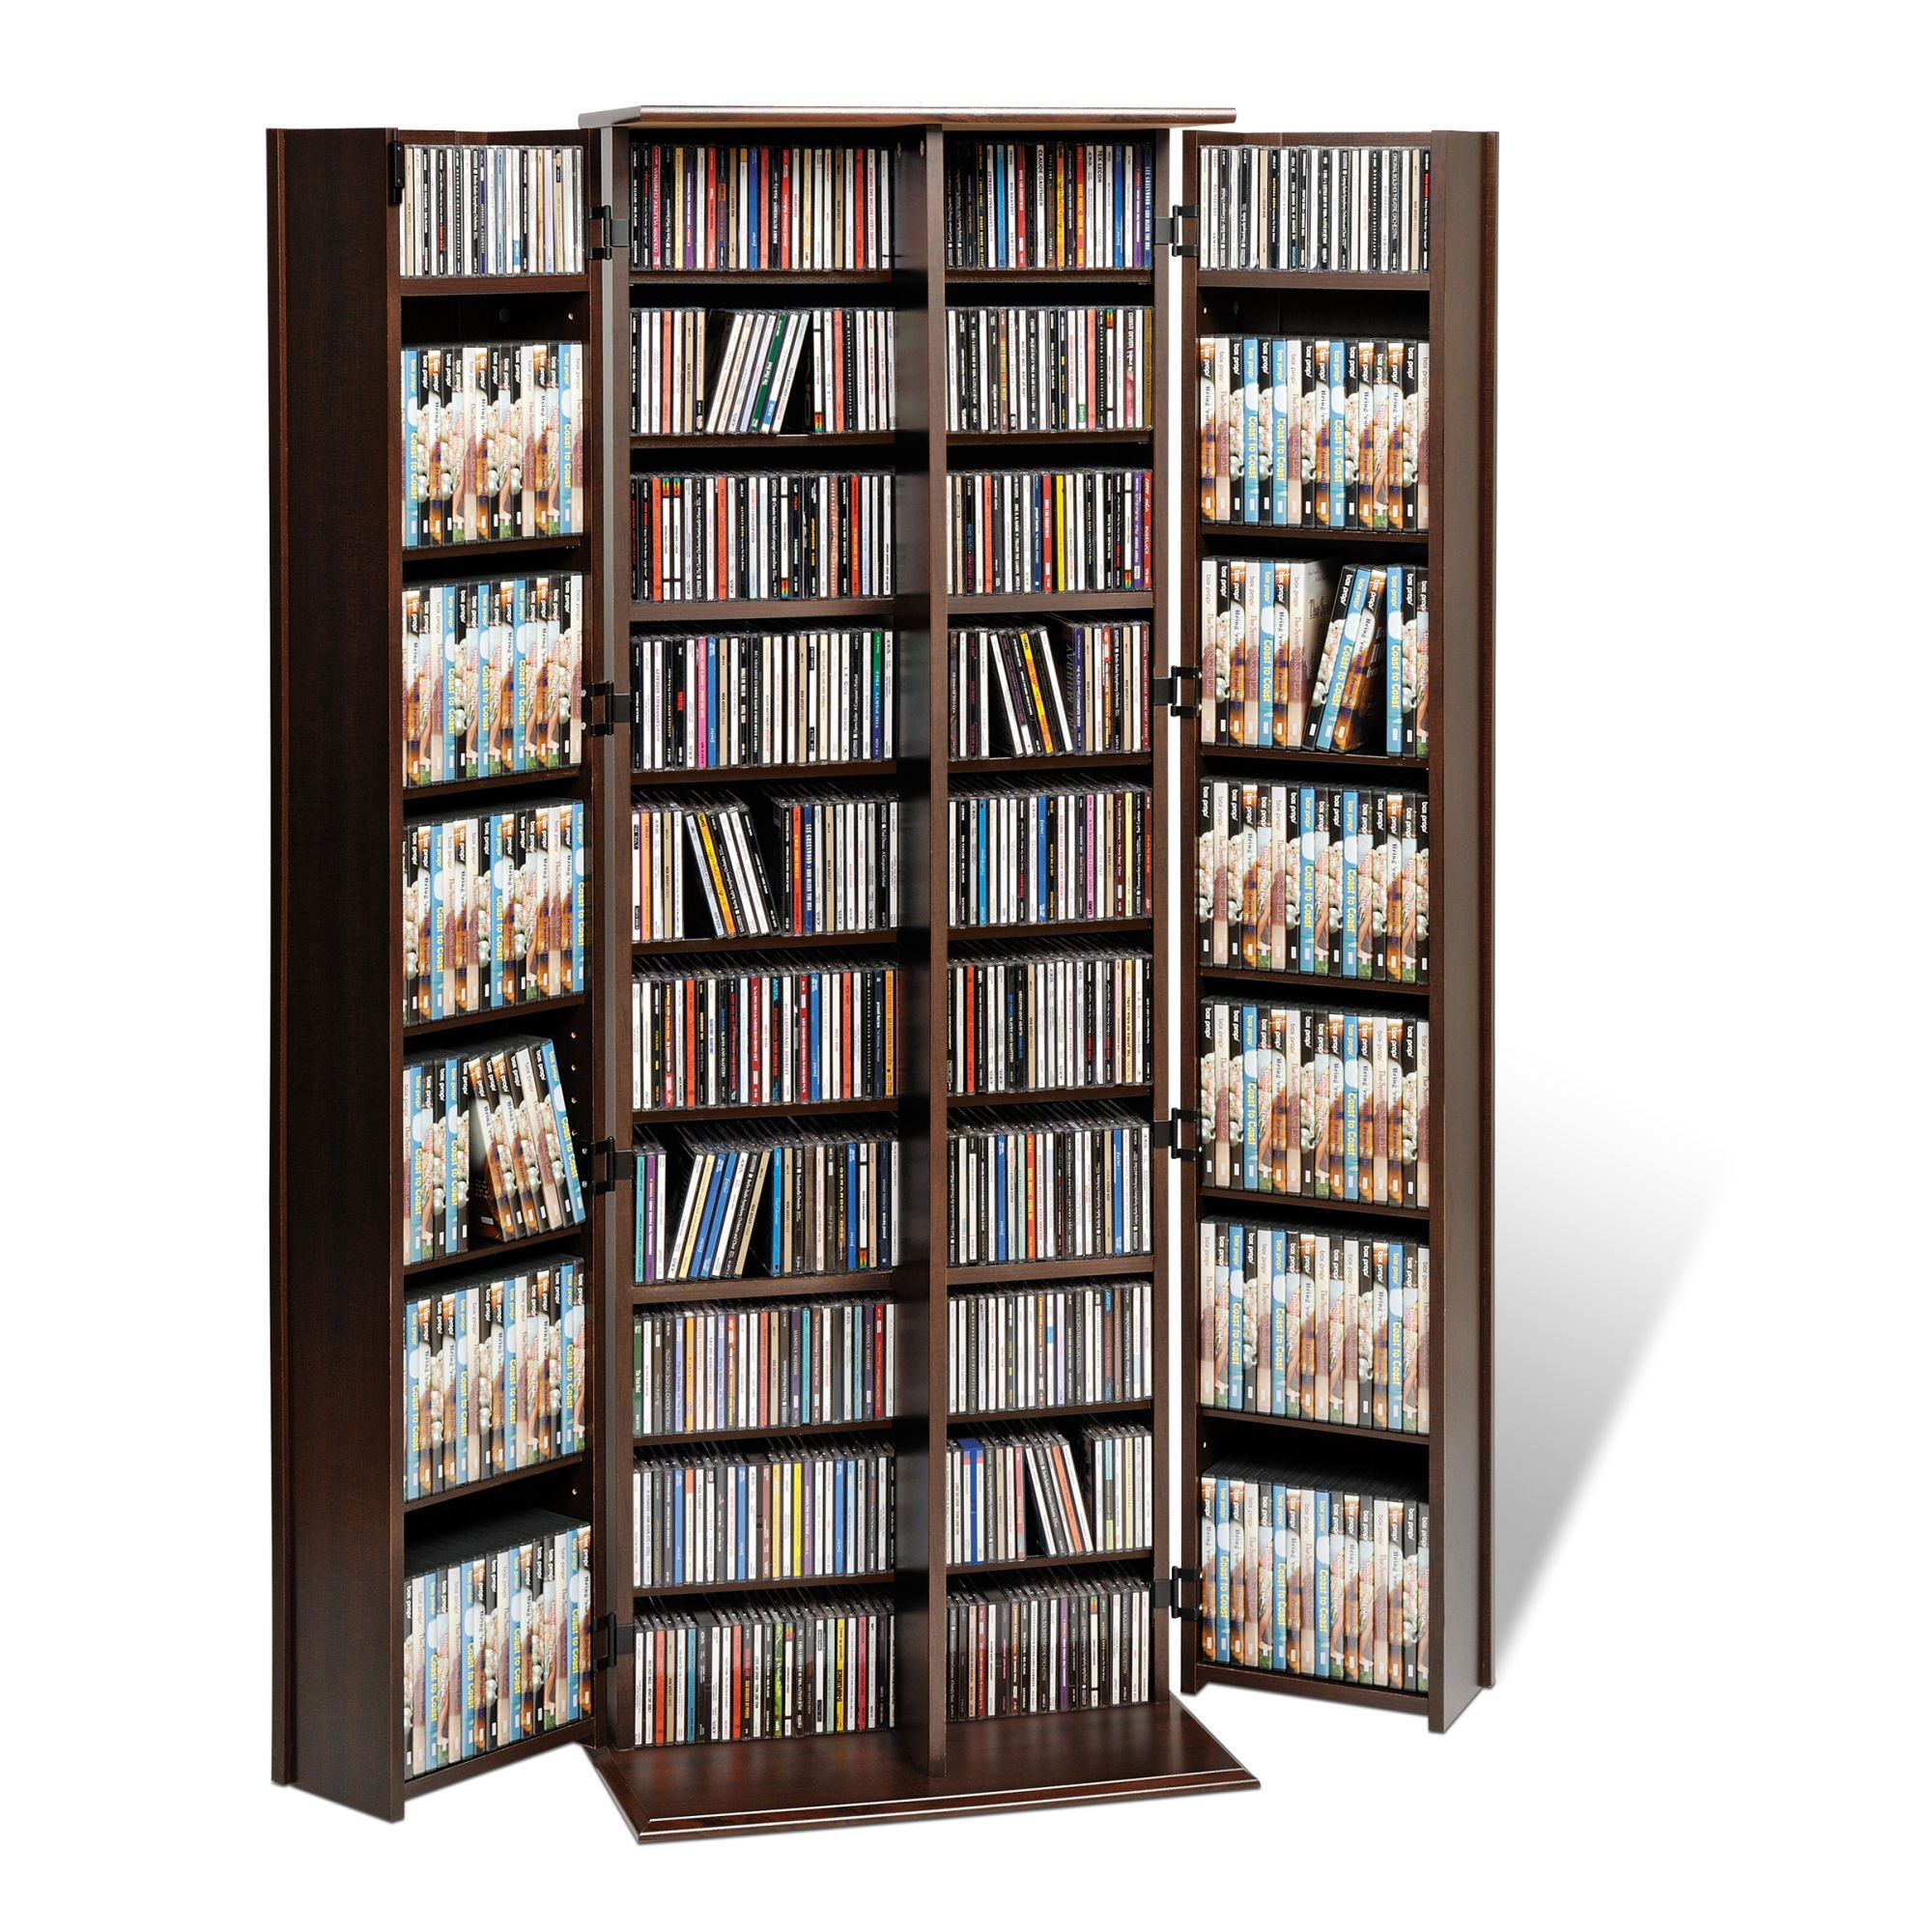 Marvelous Dvd Storage Unit With Locking Shaker Doors Create A Room Home Interior And Landscaping Ferensignezvosmurscom